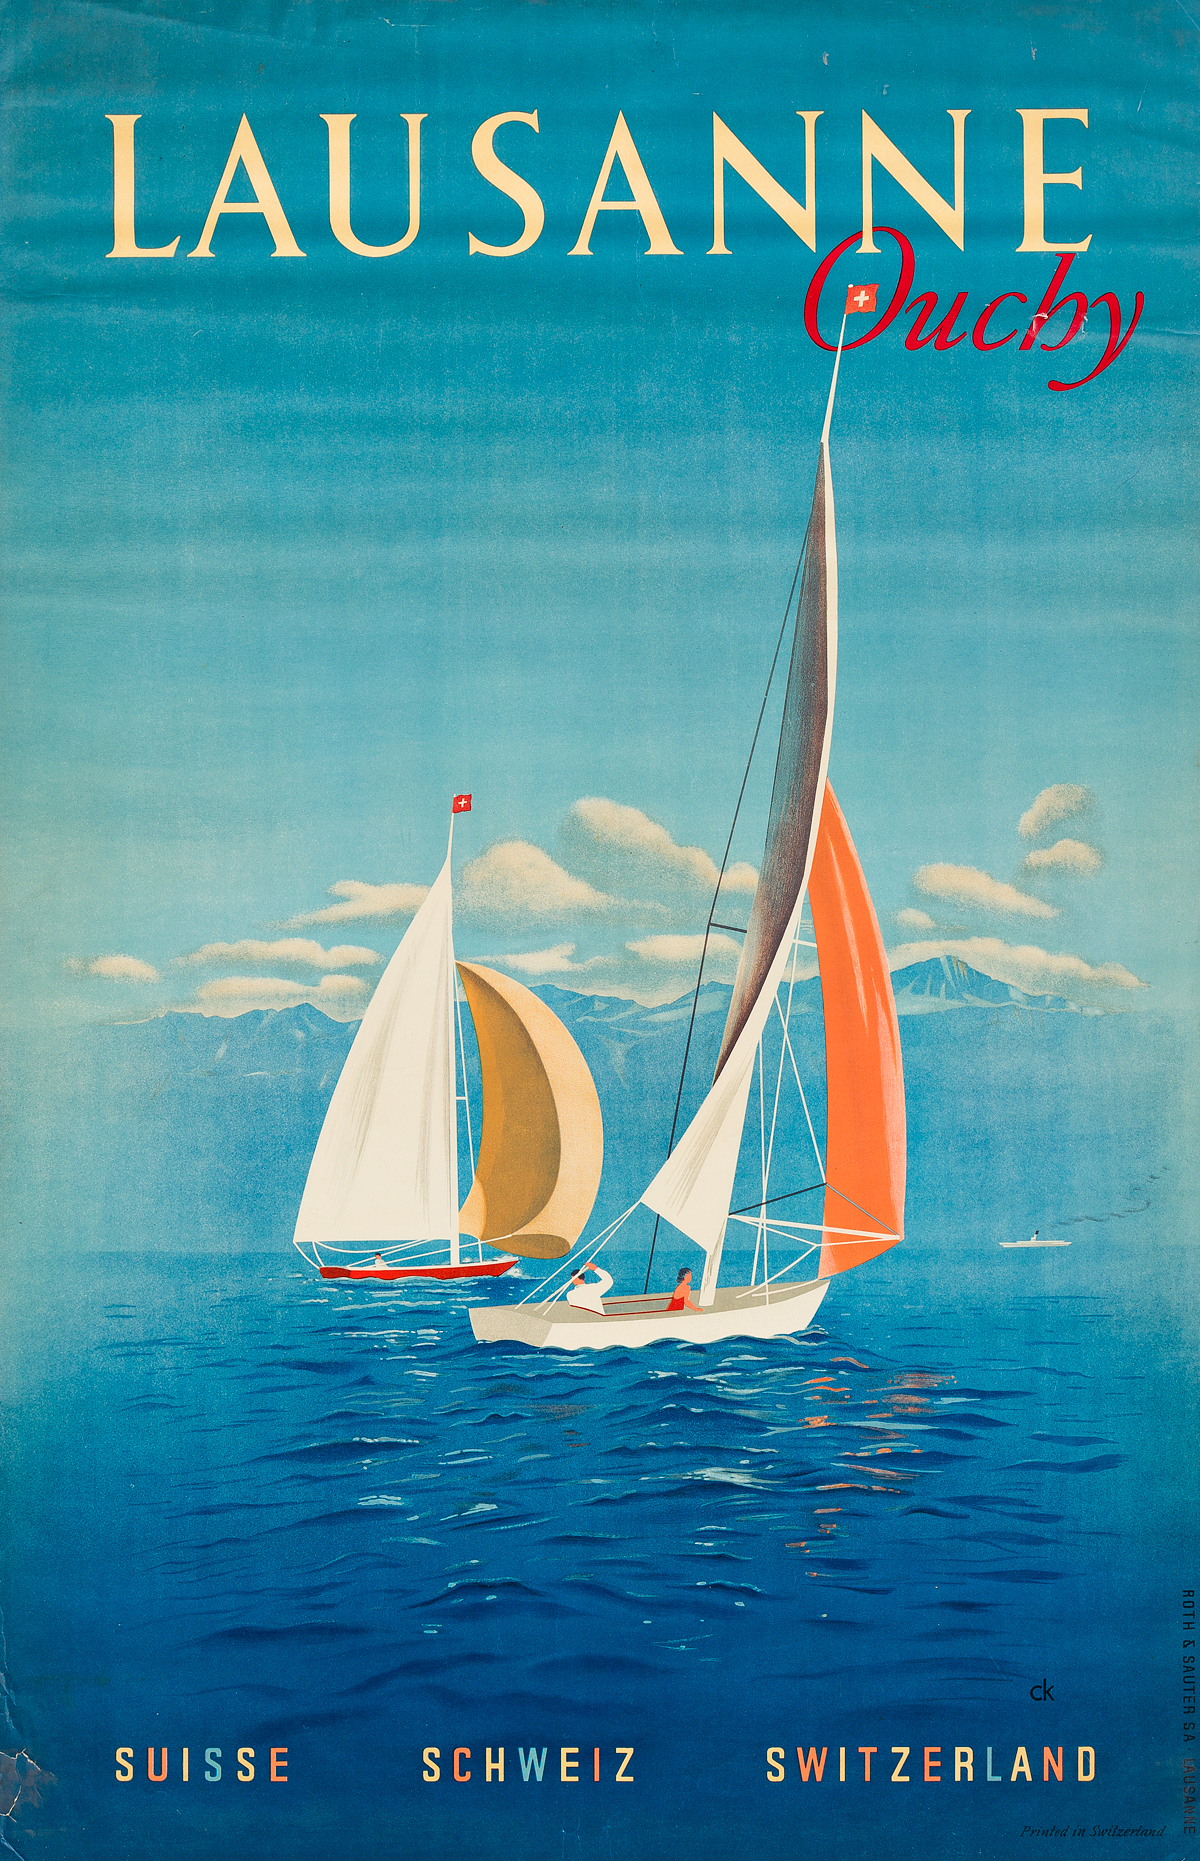 CHARLES-KUHN-(1903-1999)-LAUSANNE-OUCHY-1952-39x25-inches-99